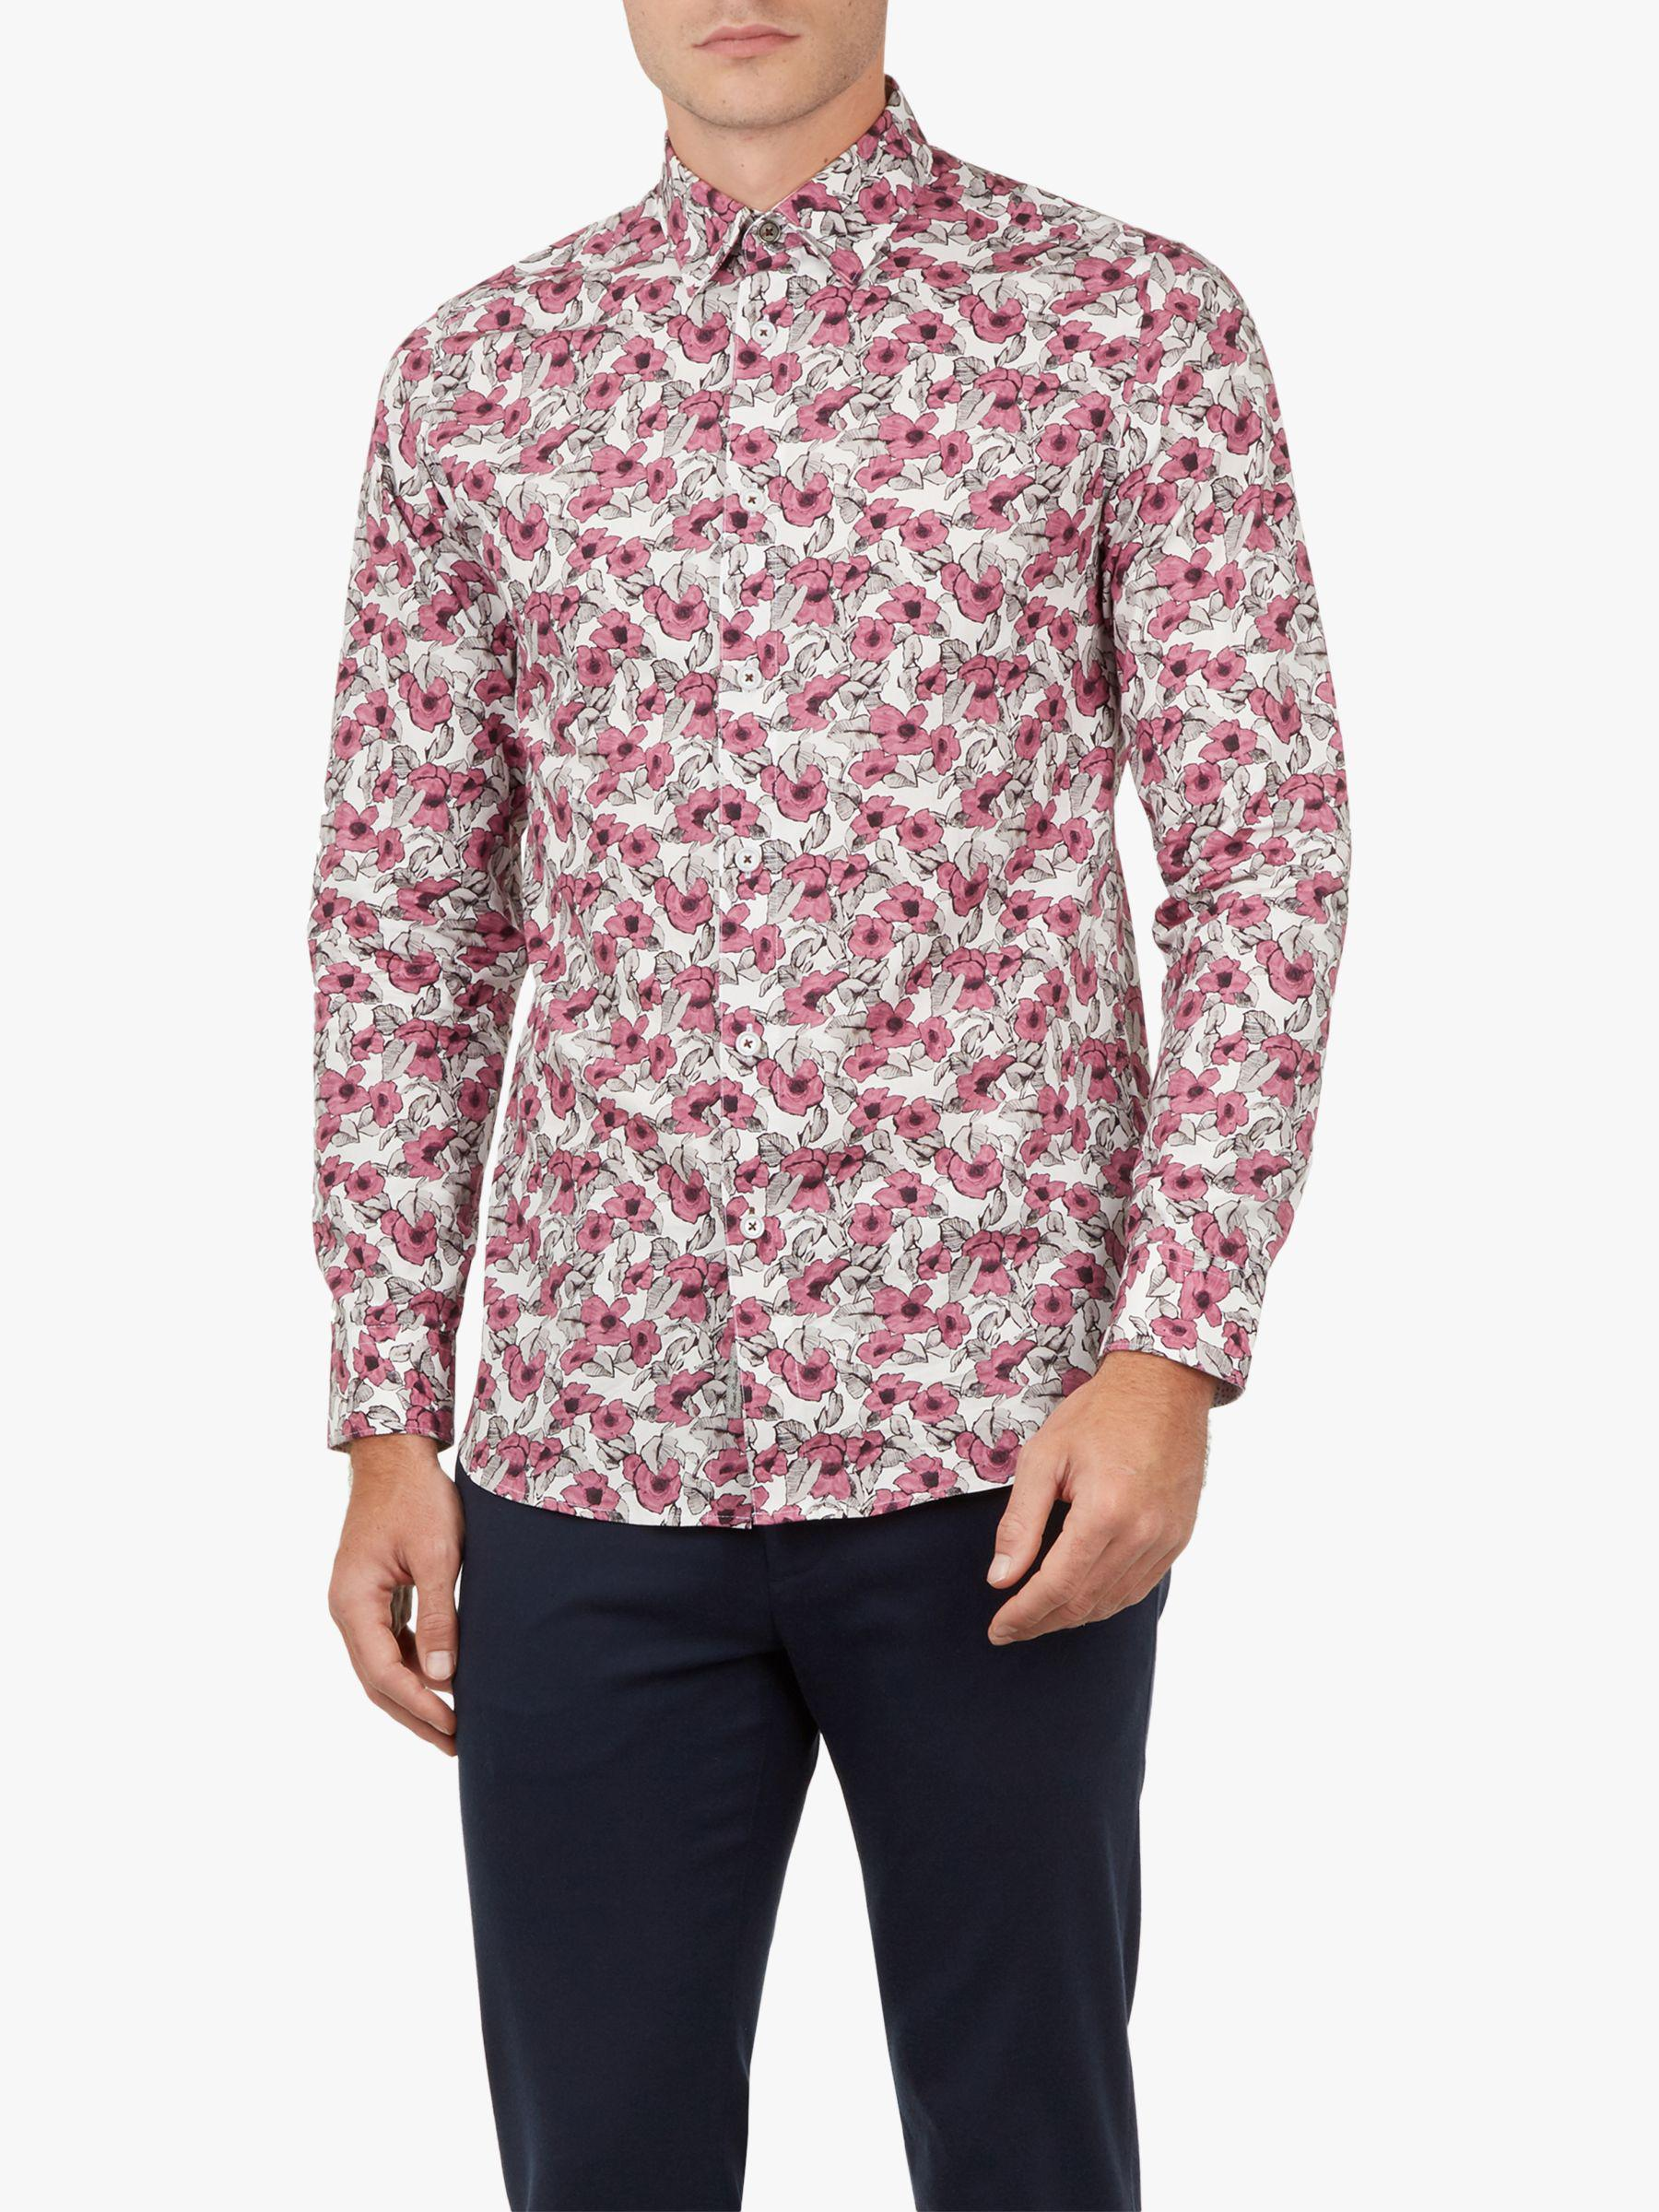 ffbb484e4 Ted Baker Croydon Long Sleeve Floral Shirt in Pink for Men - Lyst